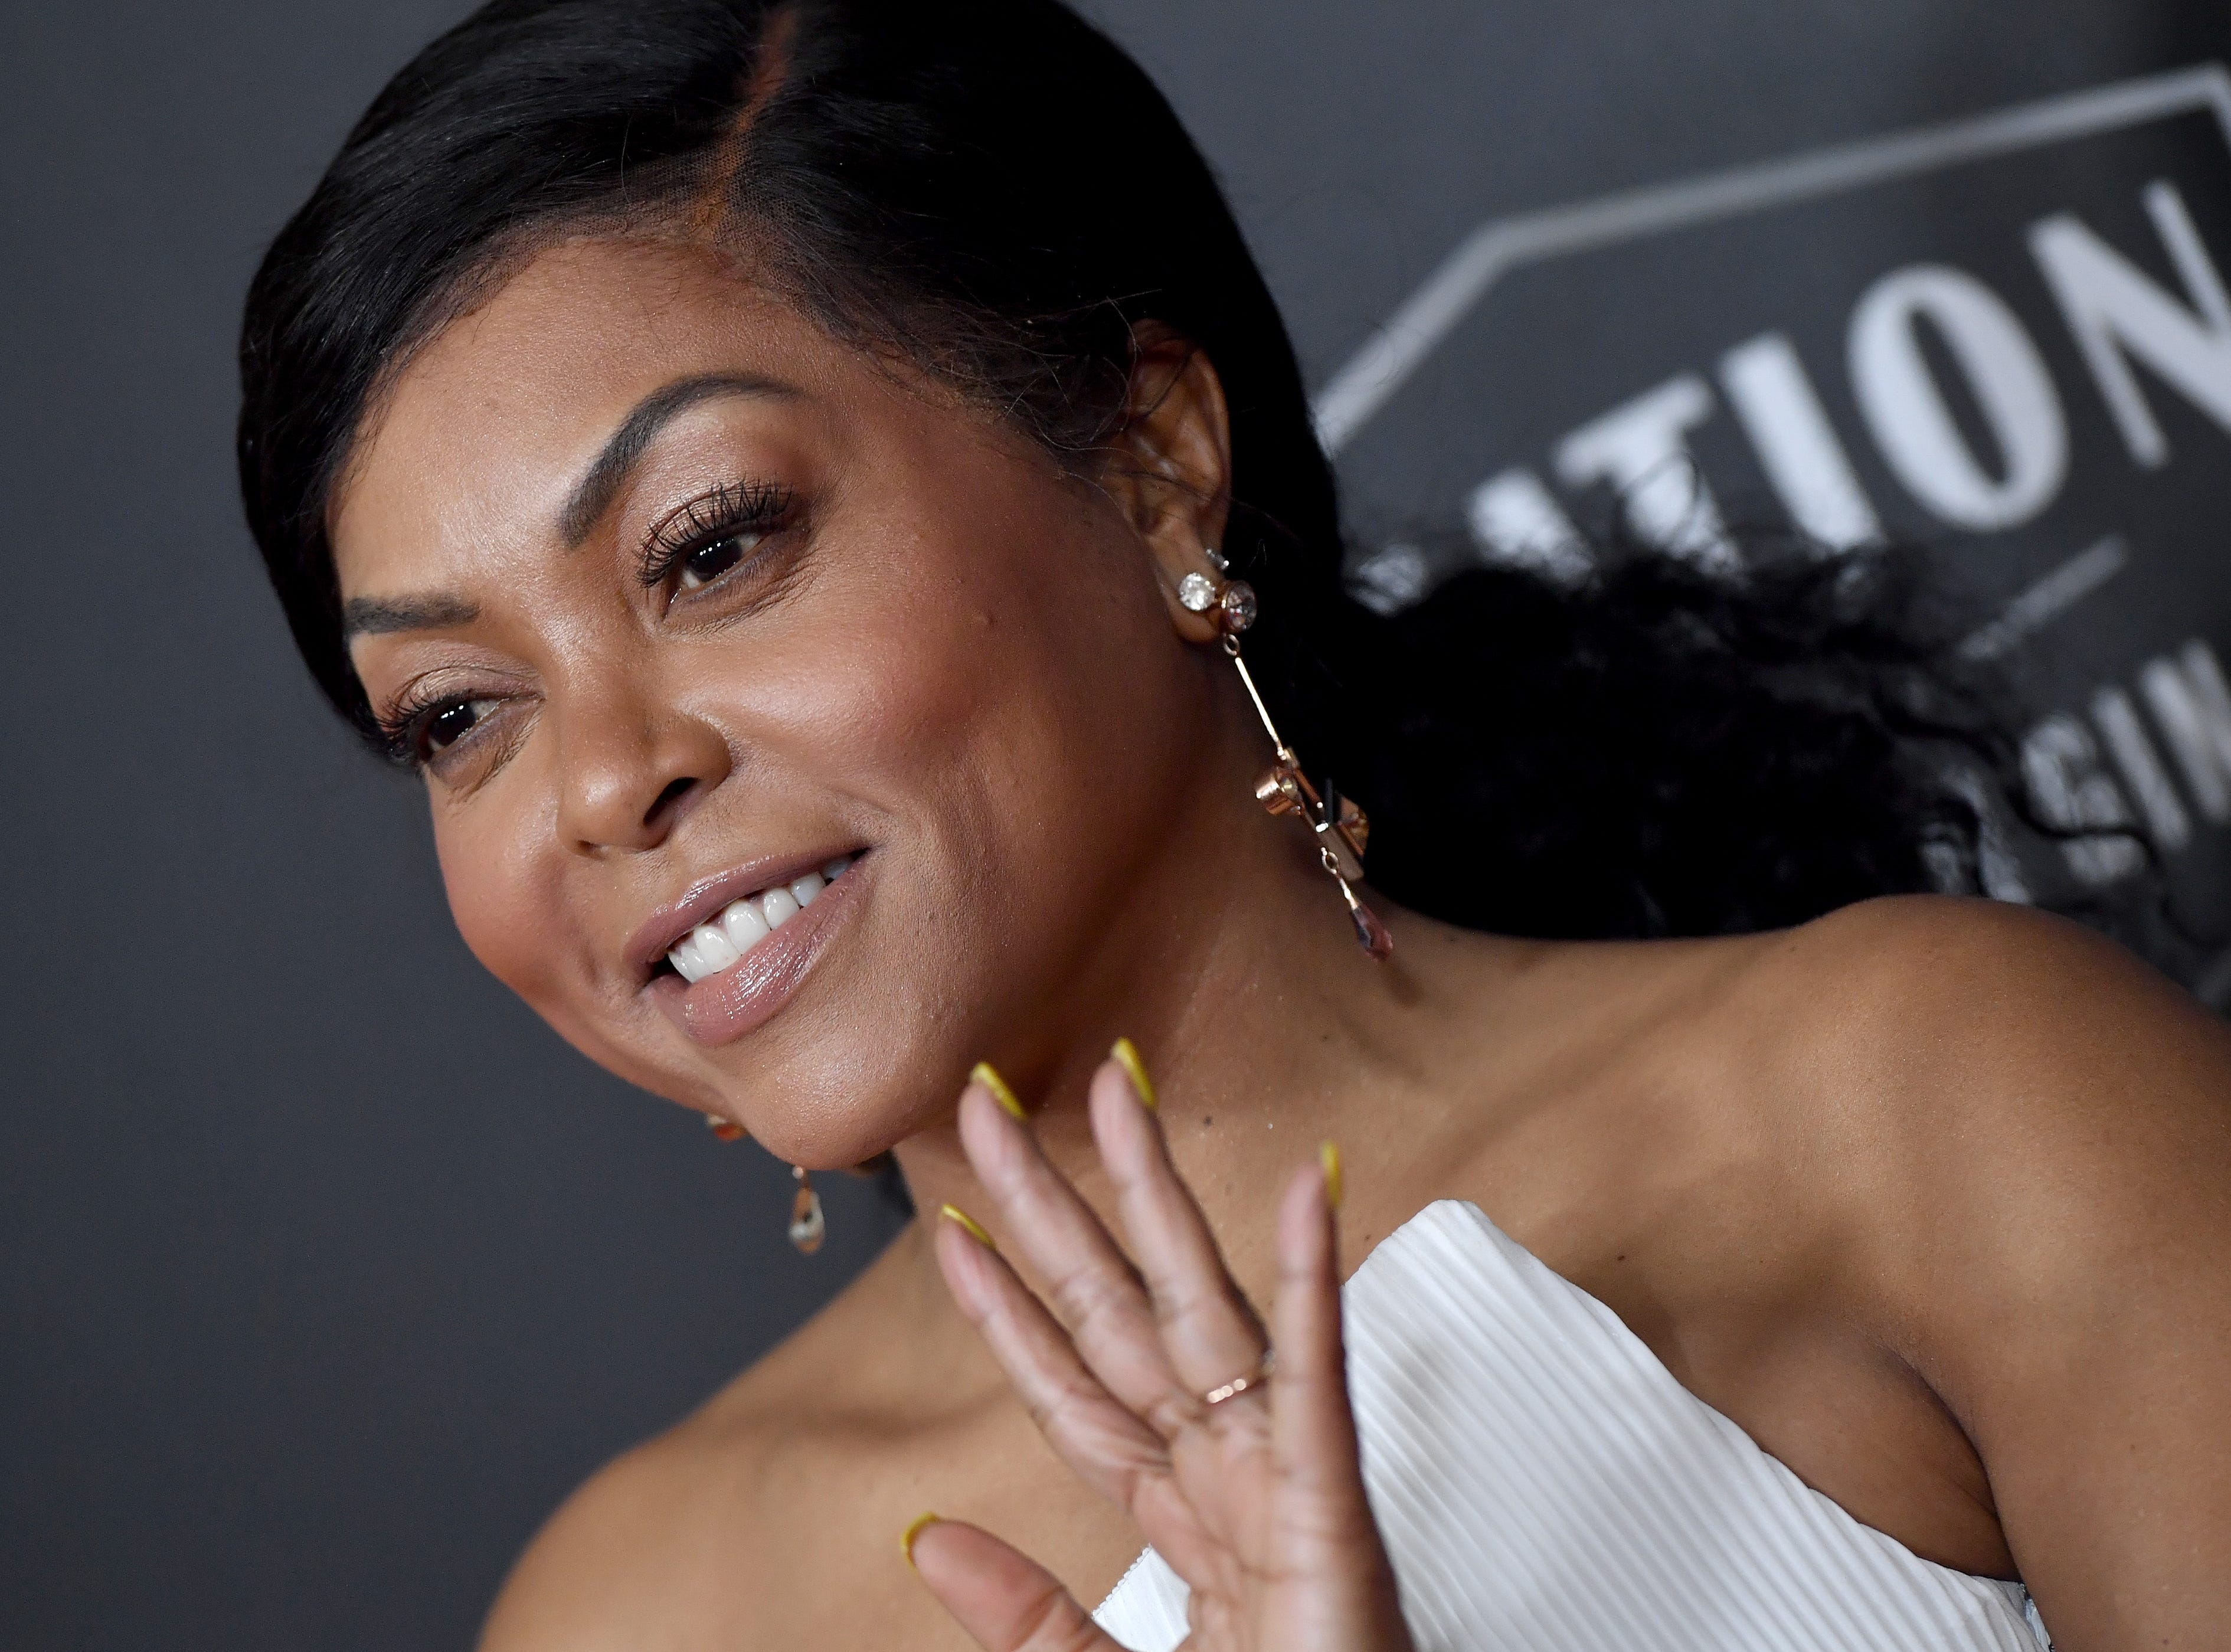 BEVERLY HILLS, CA - NOVEMBER 04:  Taraji P. Henson attends the 22nd Annual Hollywood Film Awards at The Beverly Hilton Hotel on November 4, 2018 in Beverly Hills, California.  (Photo by Axelle/Bauer-Griffin/FilmMagic) ORG XMIT: 775237947 ORIG FILE ID: 1057574684